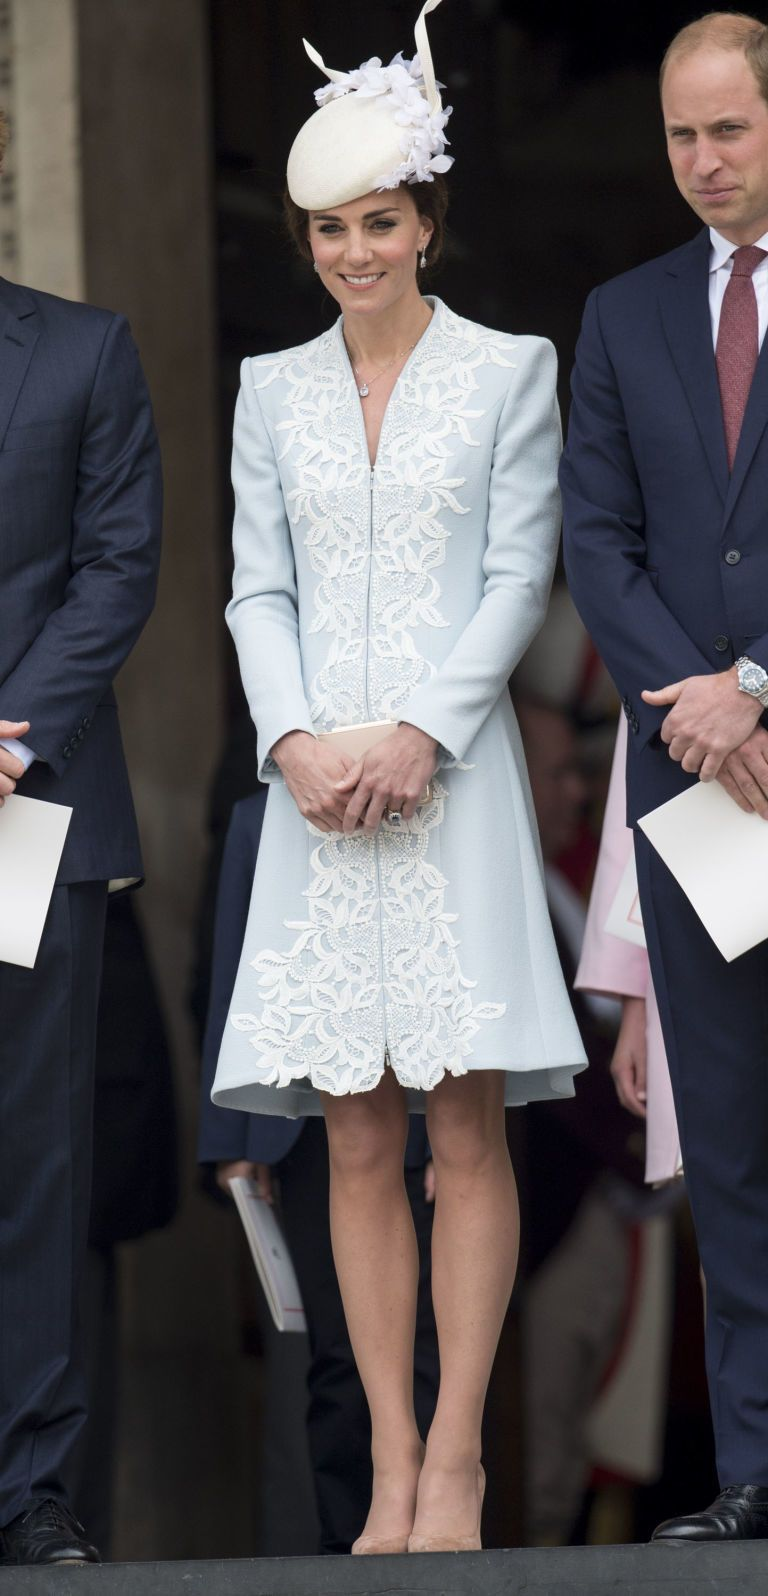 Kate Middleton's Most Controversial Outfits - Royal Style ... Kate Middleton Bunions